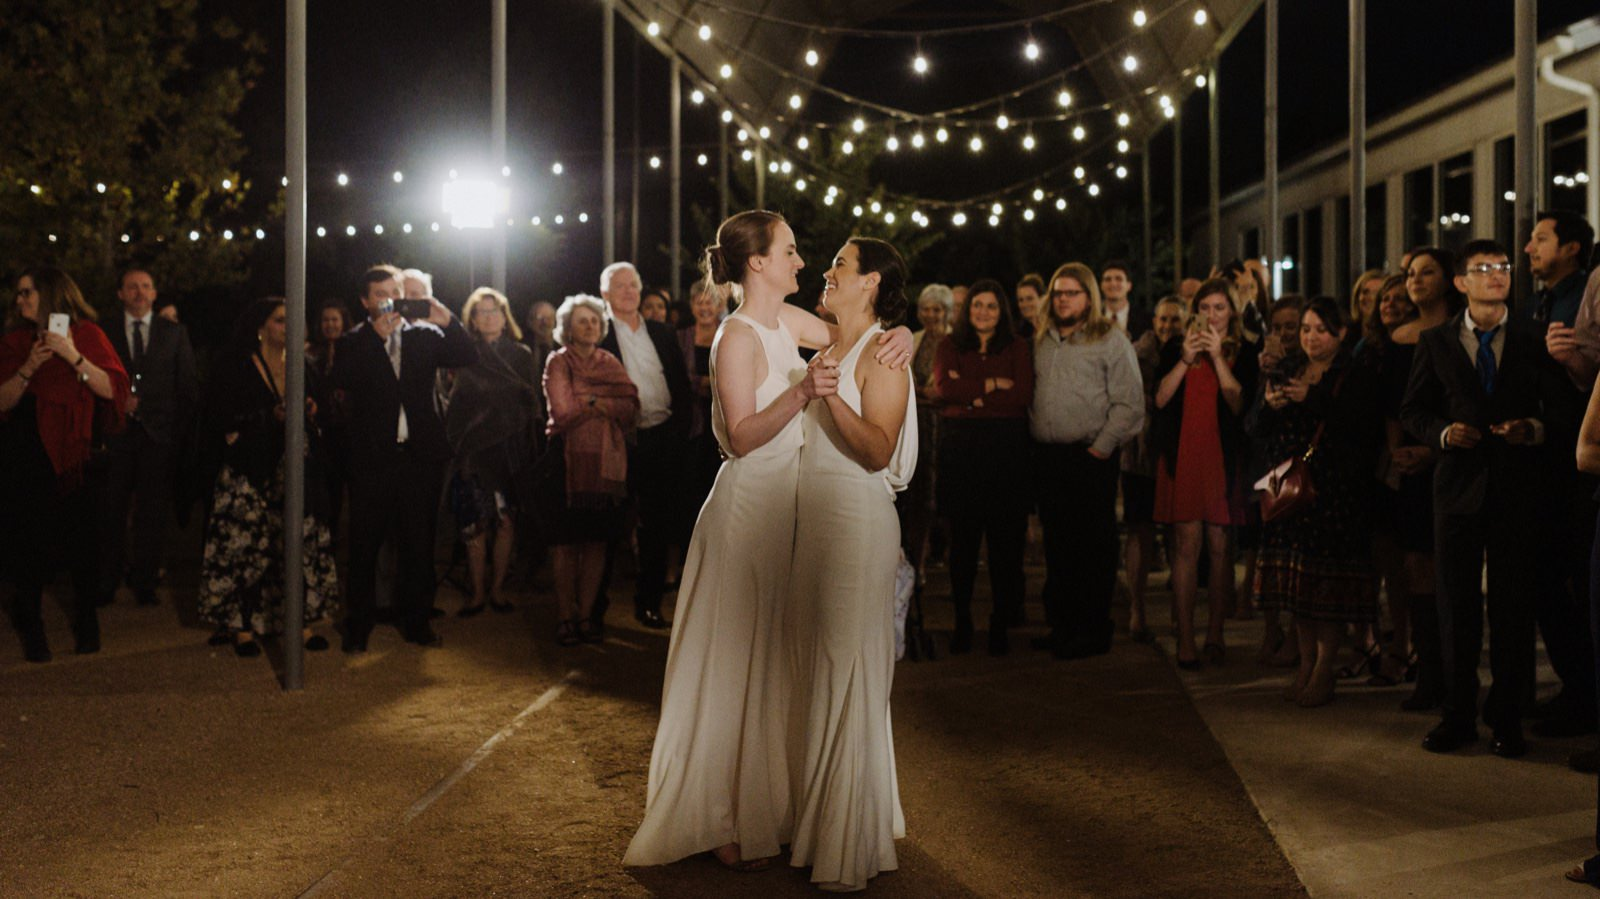 Two brides dancing under fairy lights at their Springdale Station wedding as their family and friends look on